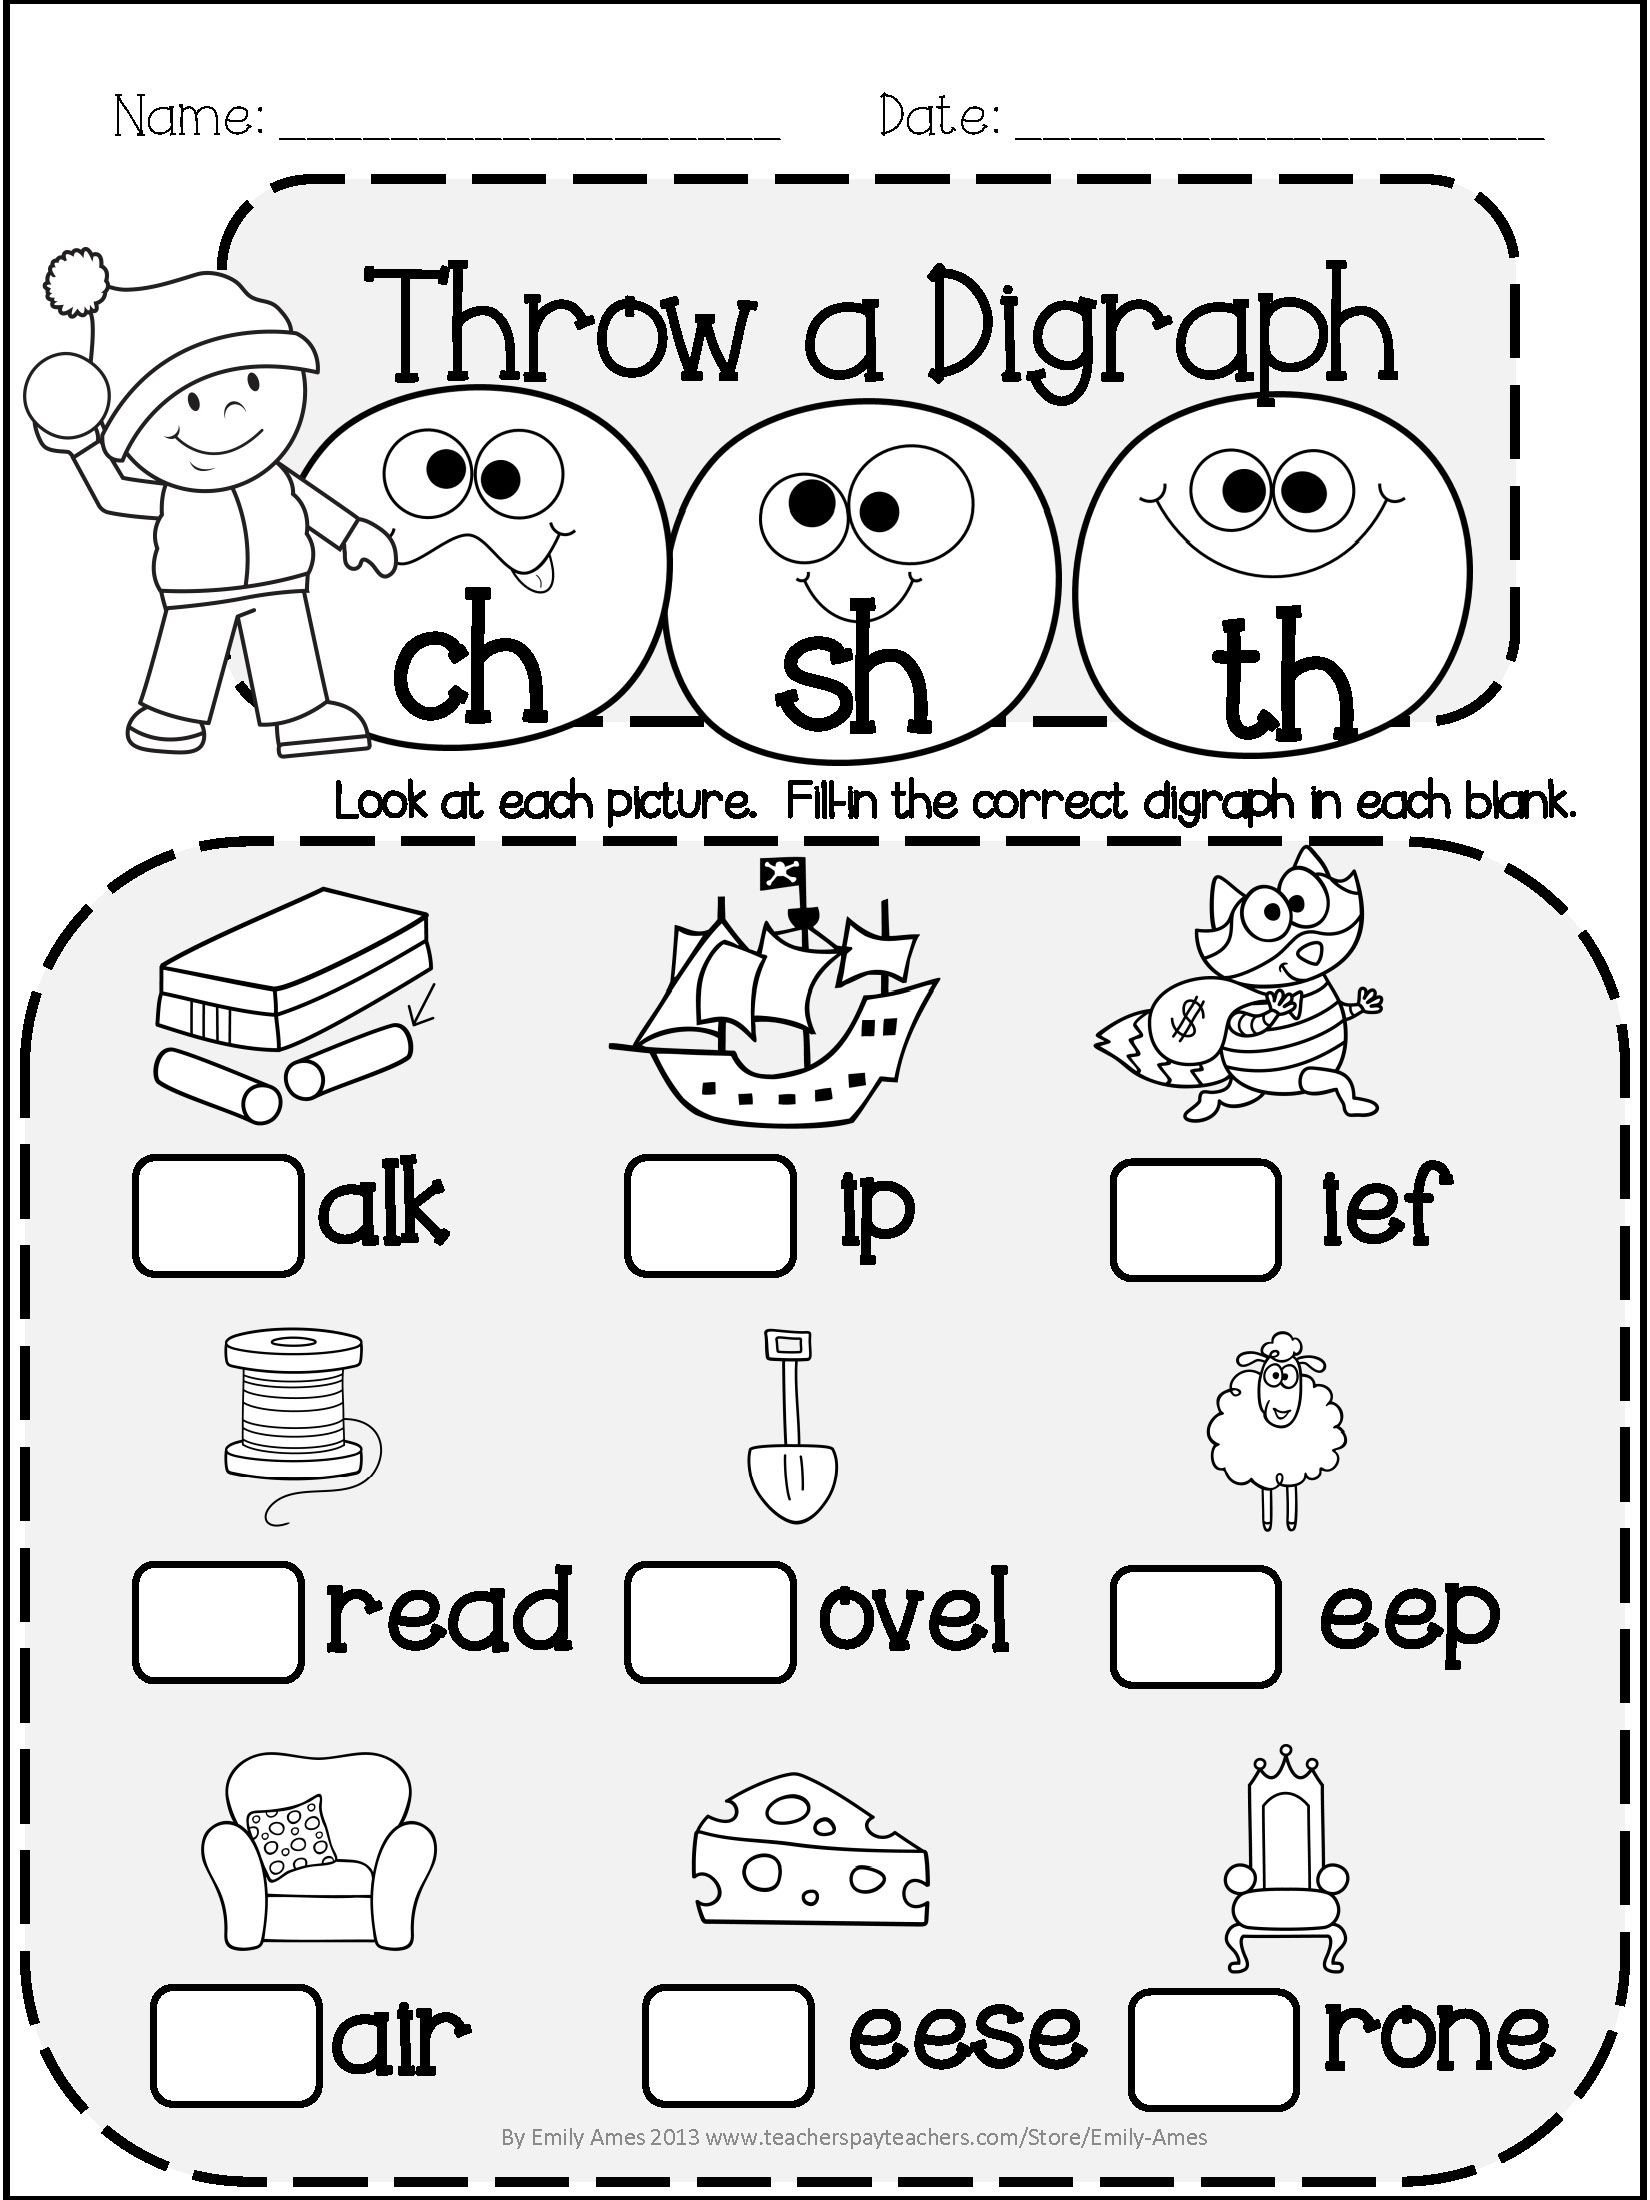 Ph Phonics Worksheets Elegant Digraph Worksheet Educational Th Worksheets